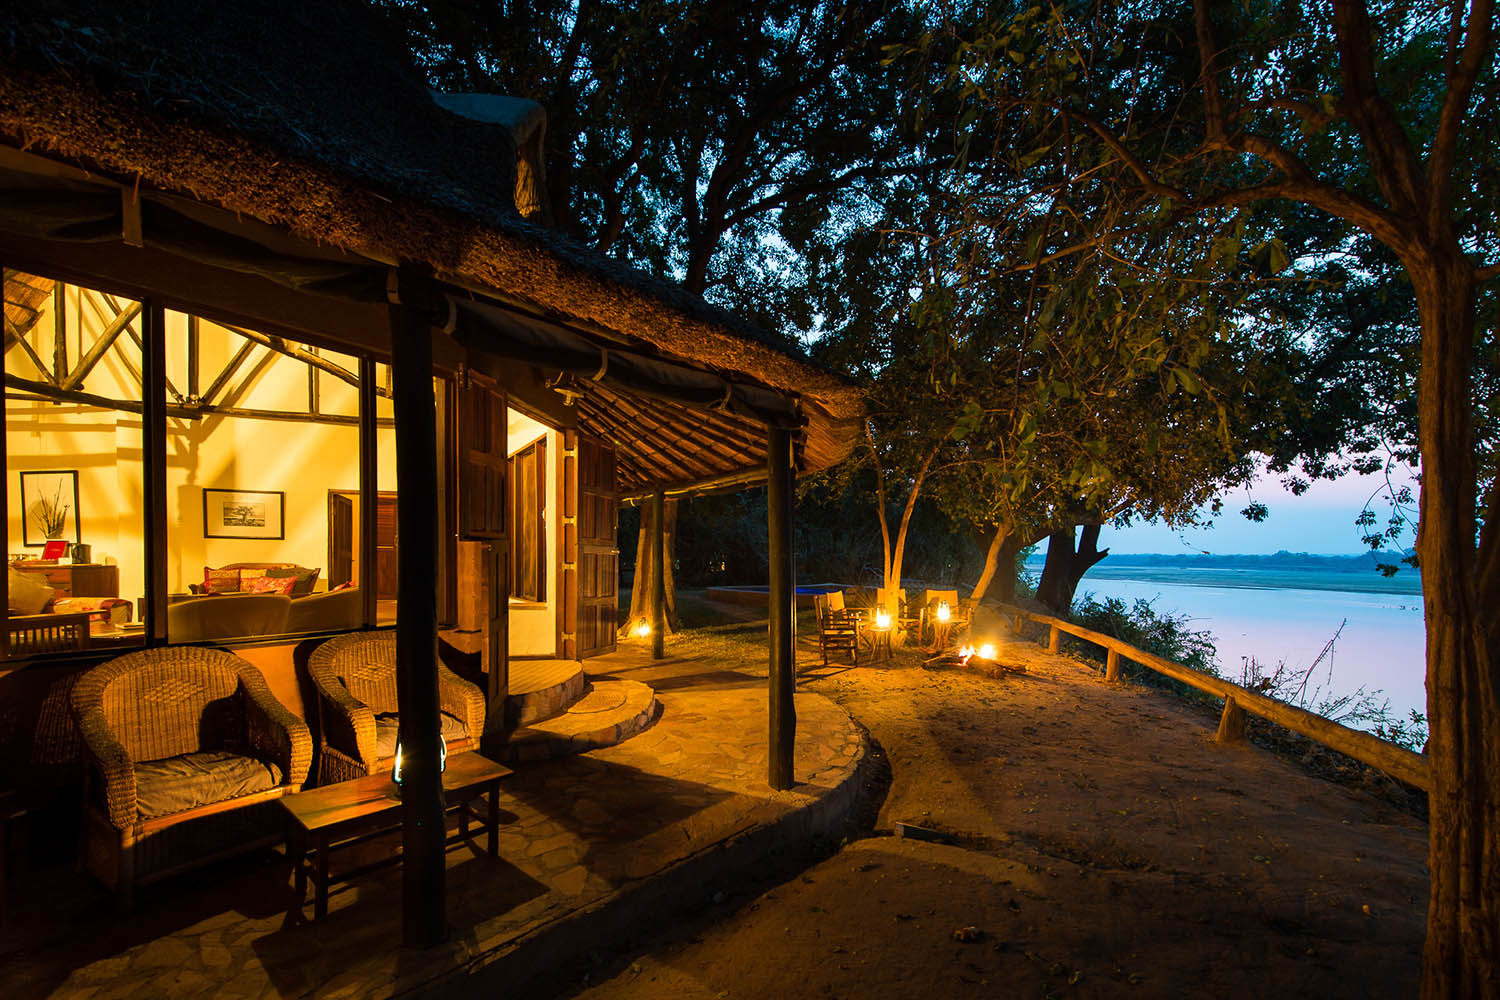 robins house lodge-zambia-in-style-tours-safari-packages-lodges-south-luangwa-national-park-house-evening-views-exterior